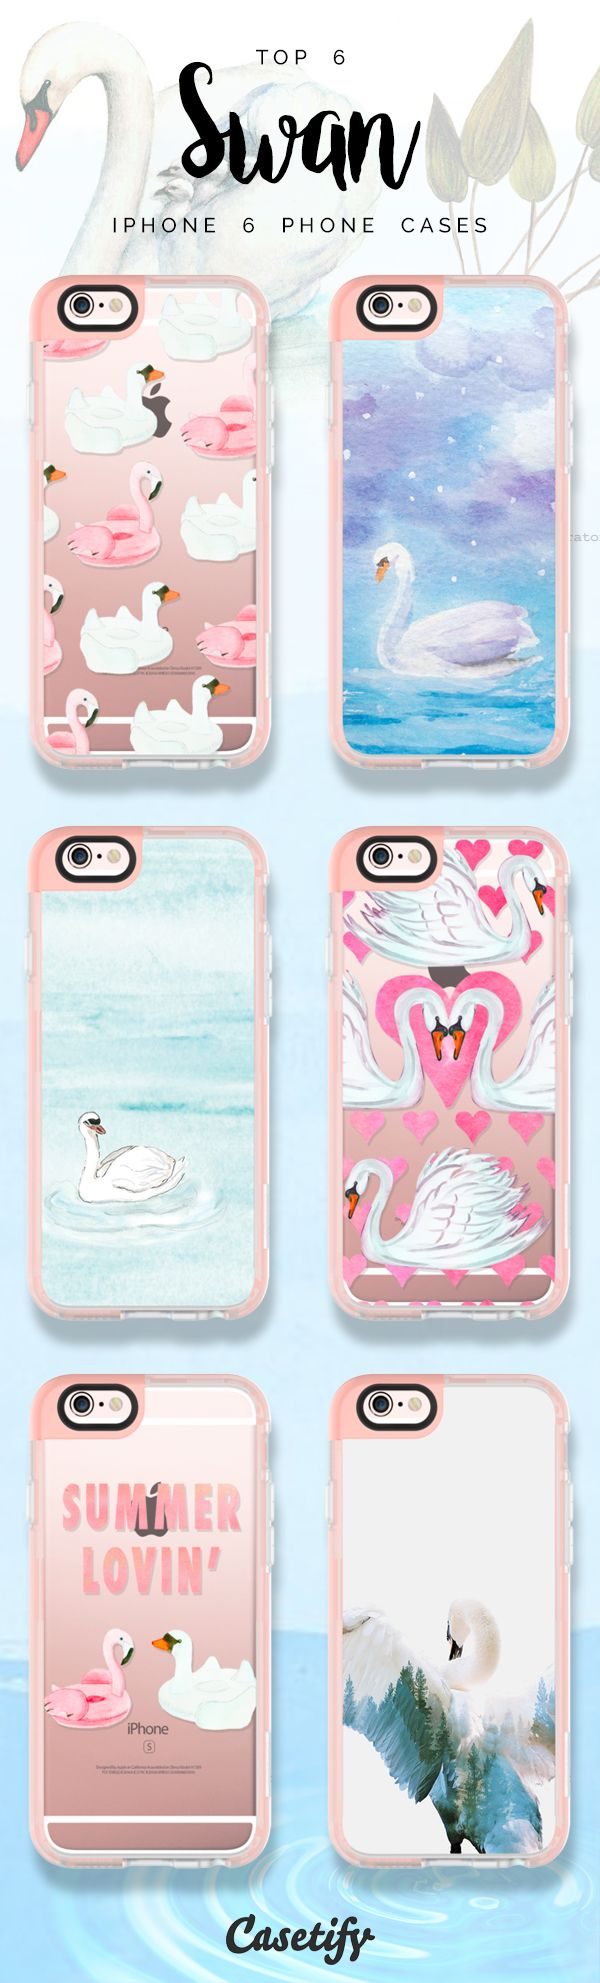 Top 6 Swan iPhone 6 protective phone case designs | Click through to see more iPhone phone case idea >>> https://www.casetify.com/collections/iphone-6s-swan-cases?device=iphone-6s | @casetify